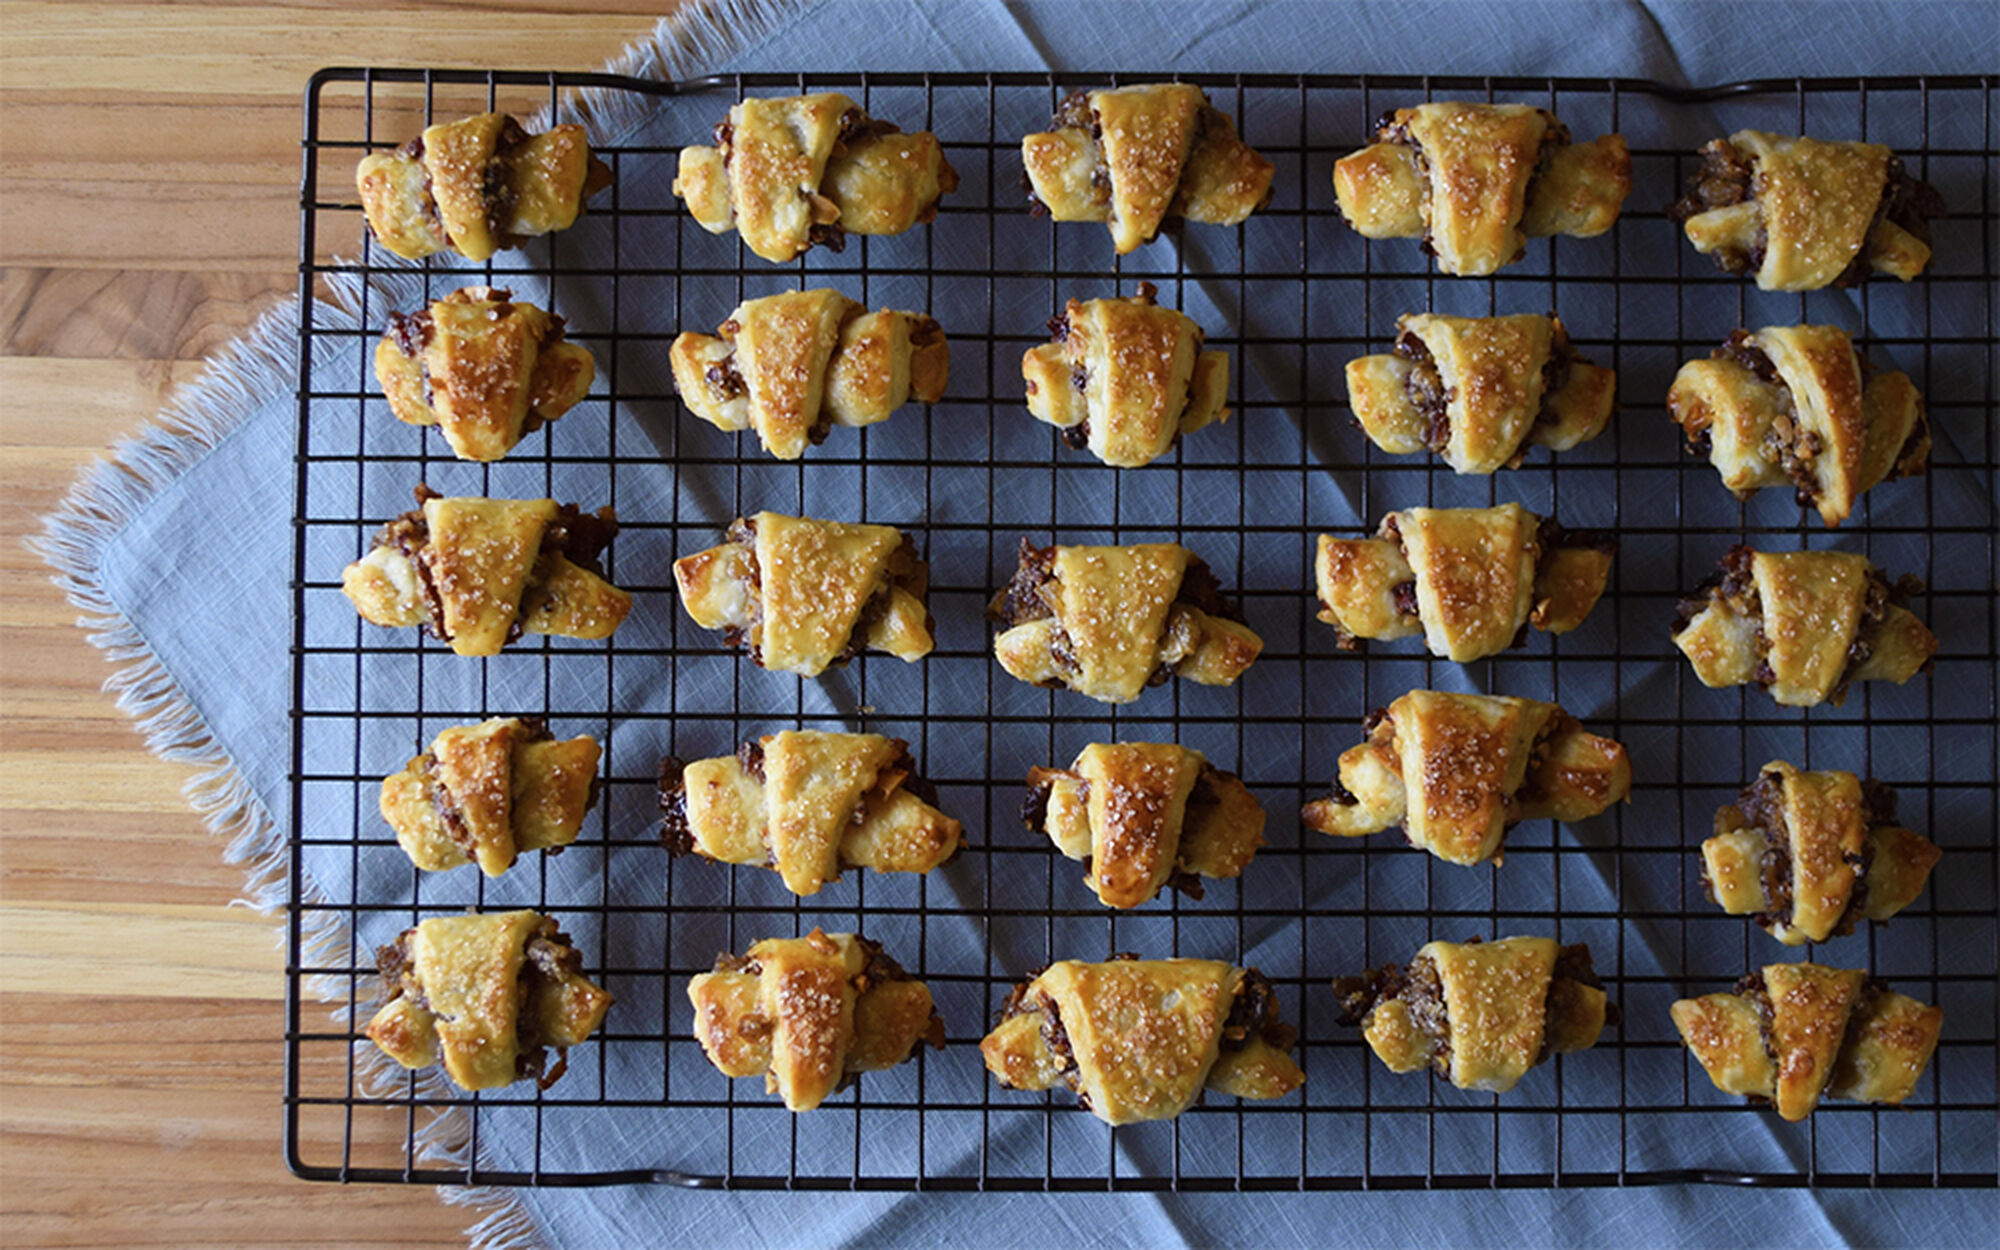 images/content/edible-holiday-gifts.jpg